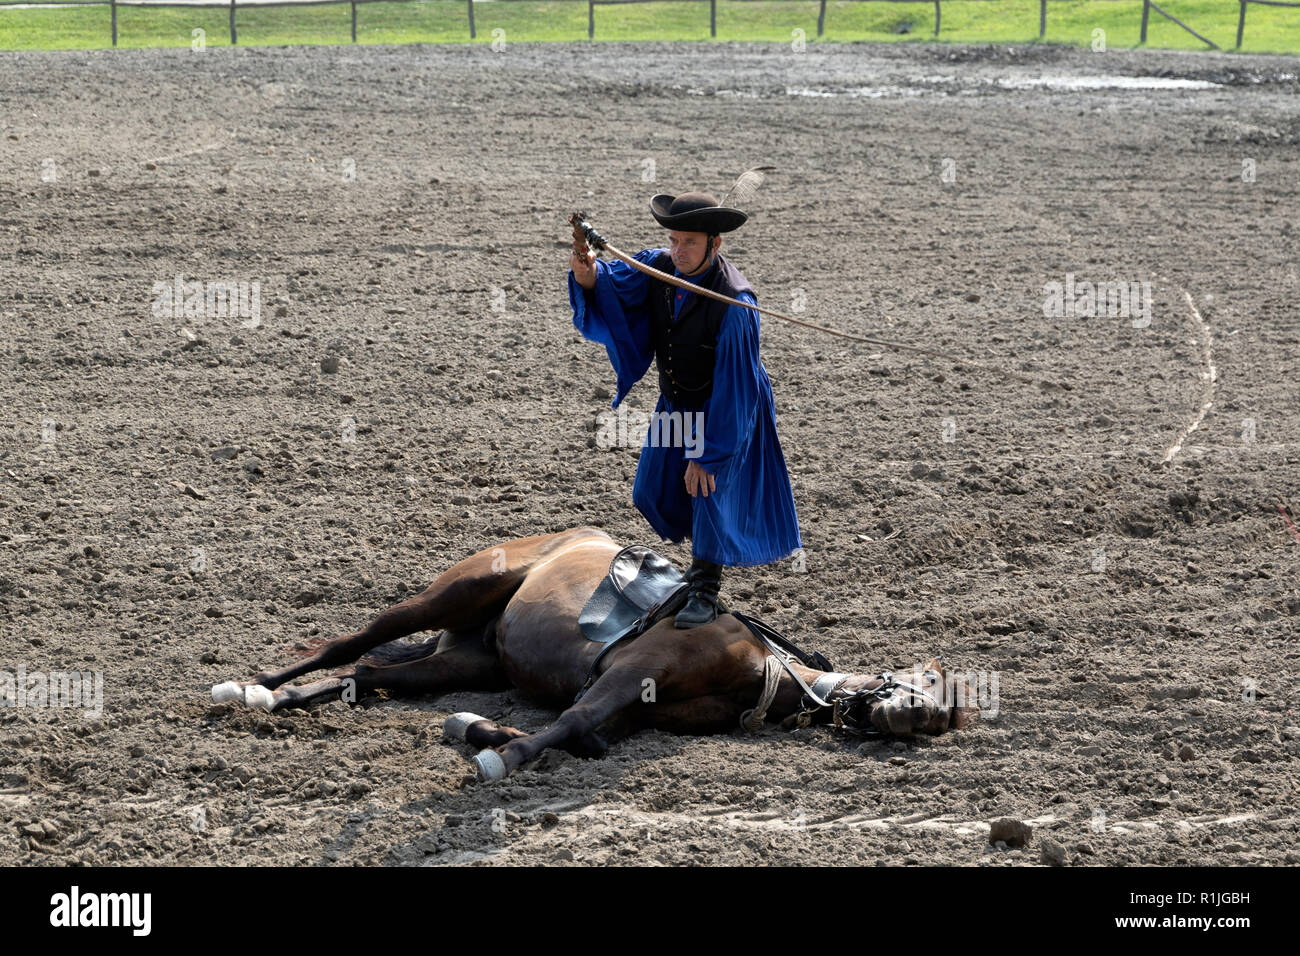 Equestrian show in the Puszta region of Hungary Stock Photo